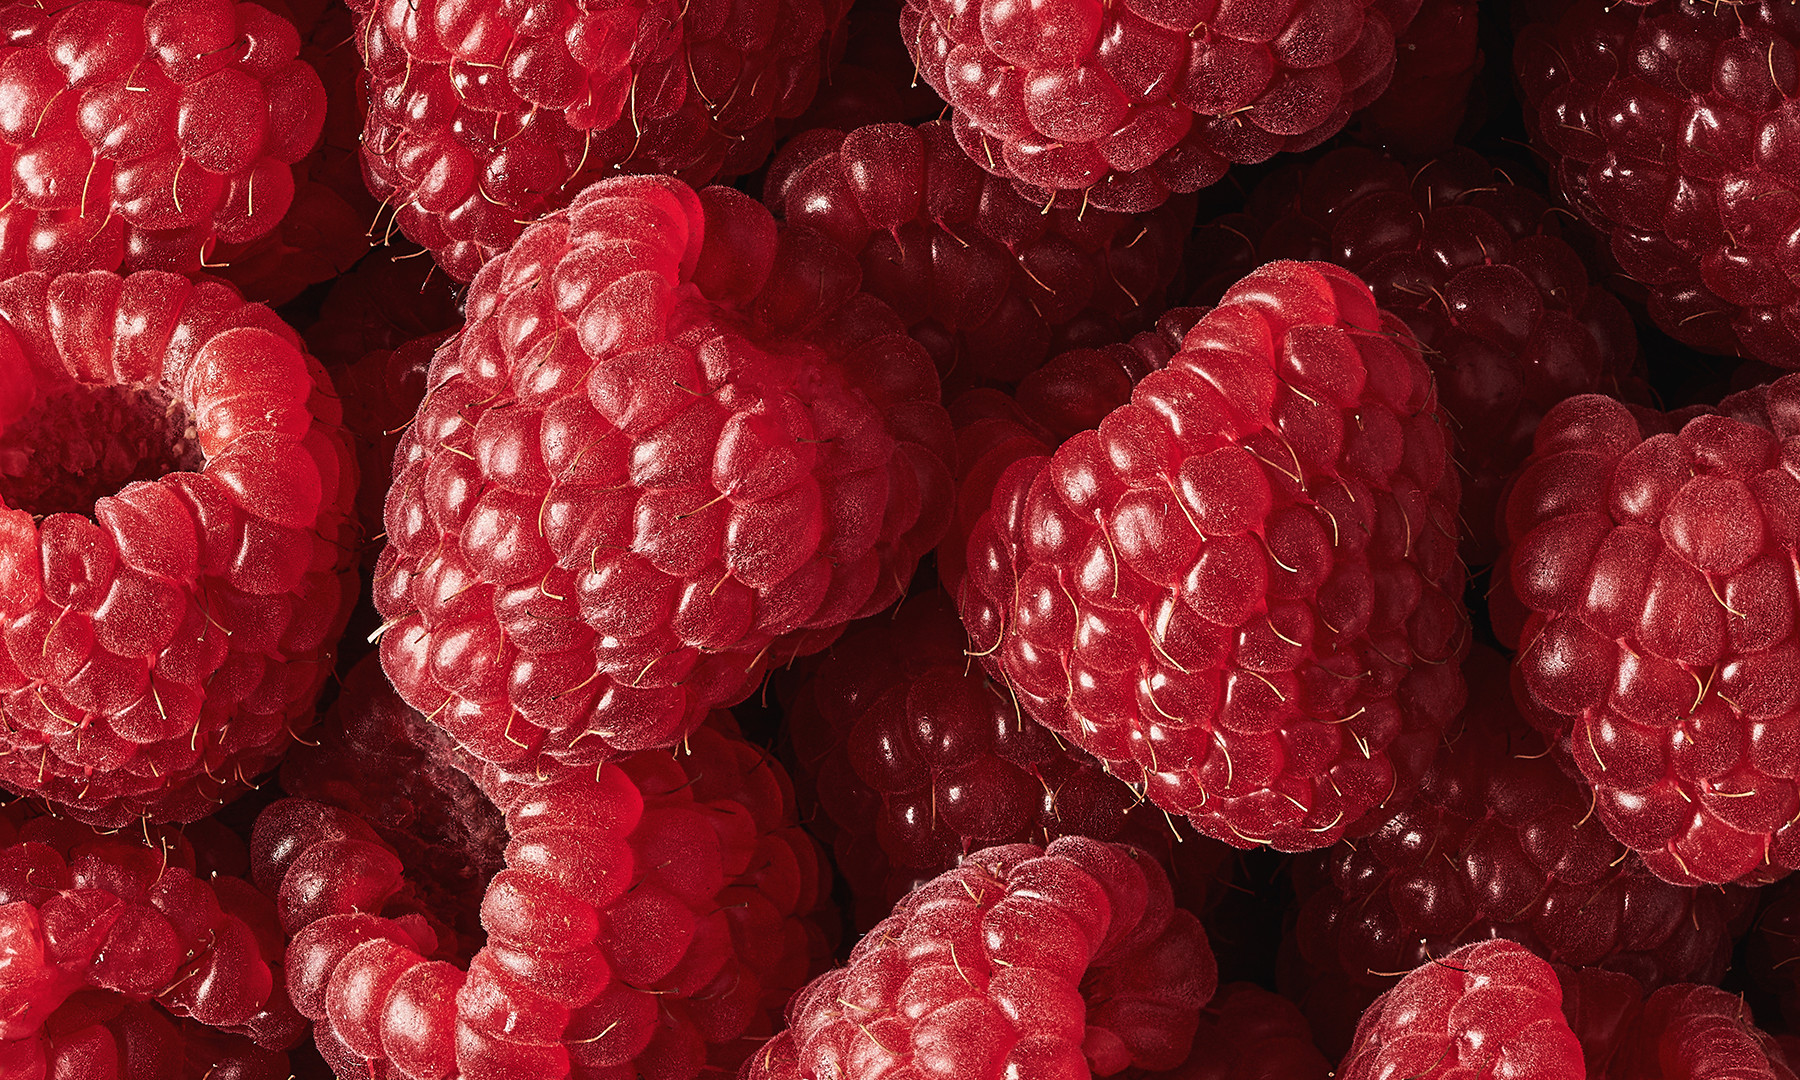 NED GIBBS - RASPBERRIES